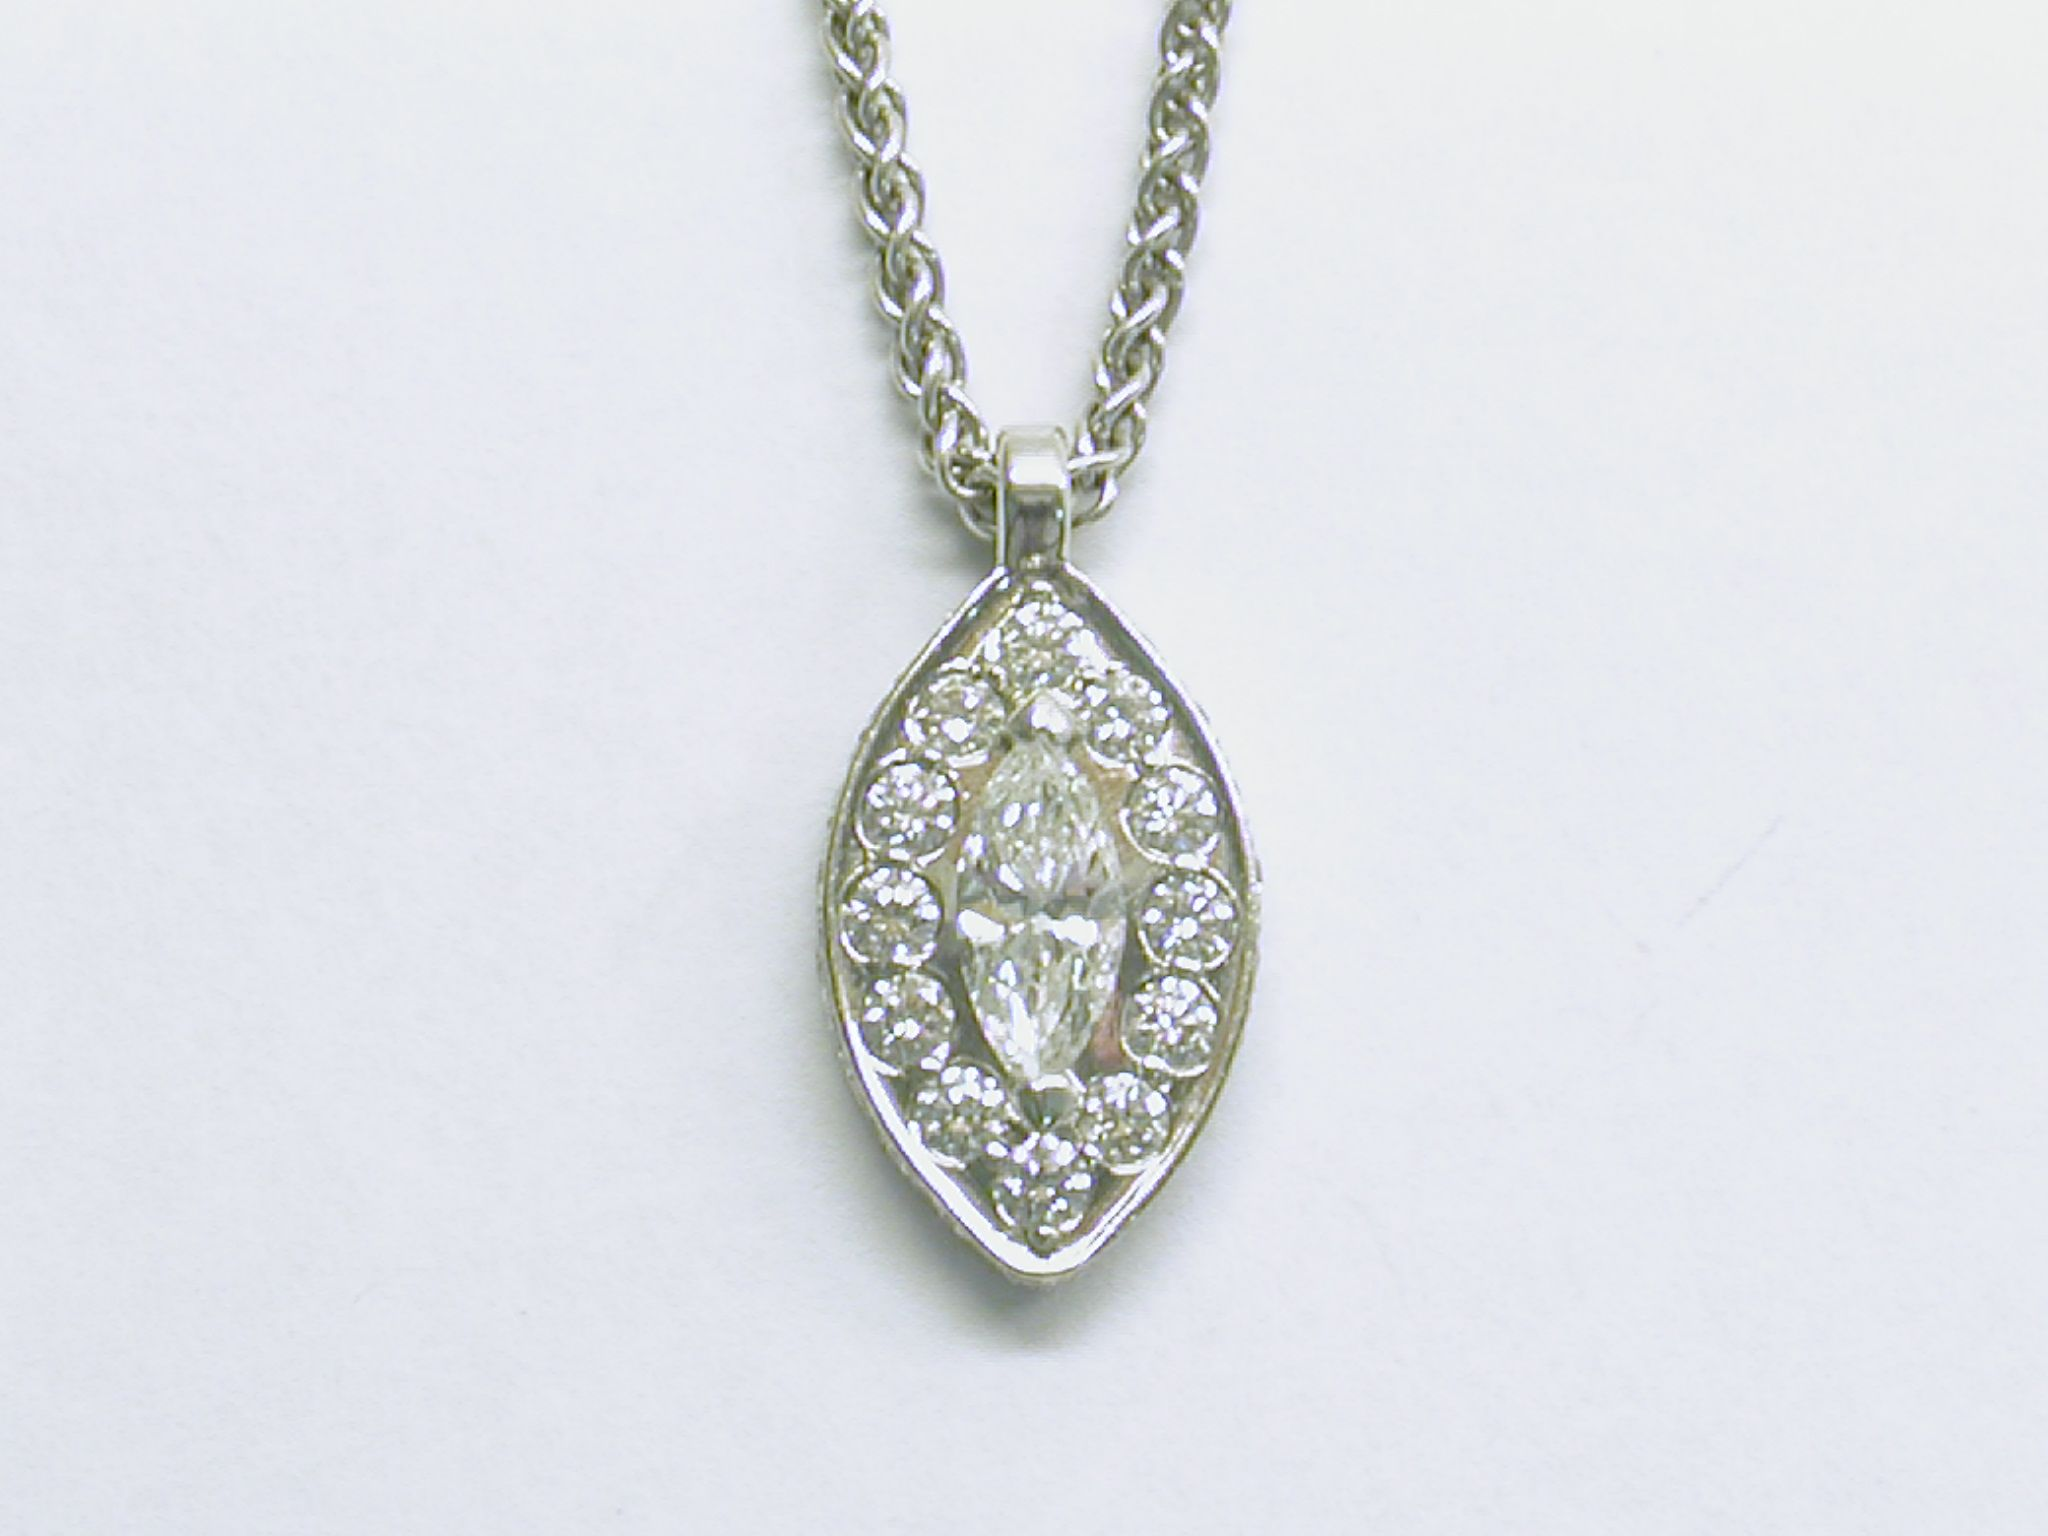 white necklace ii defnenecklace selin defne marquise sapphire diamond selinkent kent wd pendant yg products